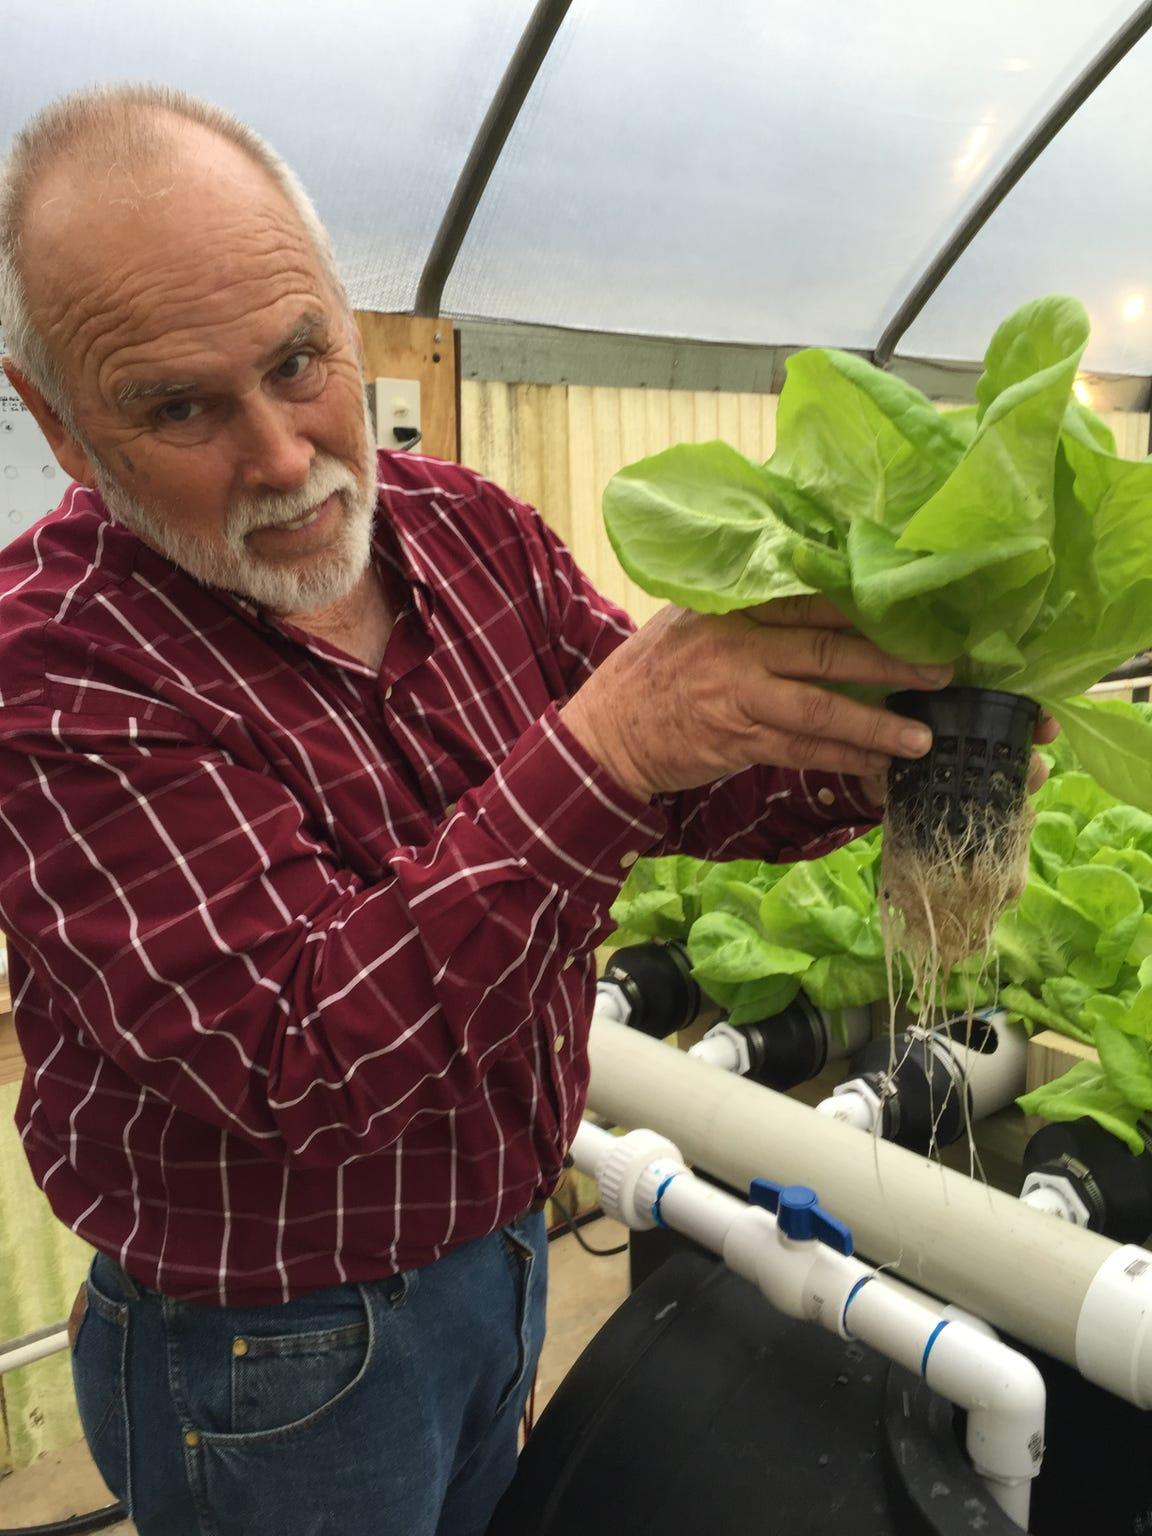 Rory Gresham, greenhouse manager for Richland Parish School Food Services, shows the root system on lettuce being grown in a hydroponic greenhouse.